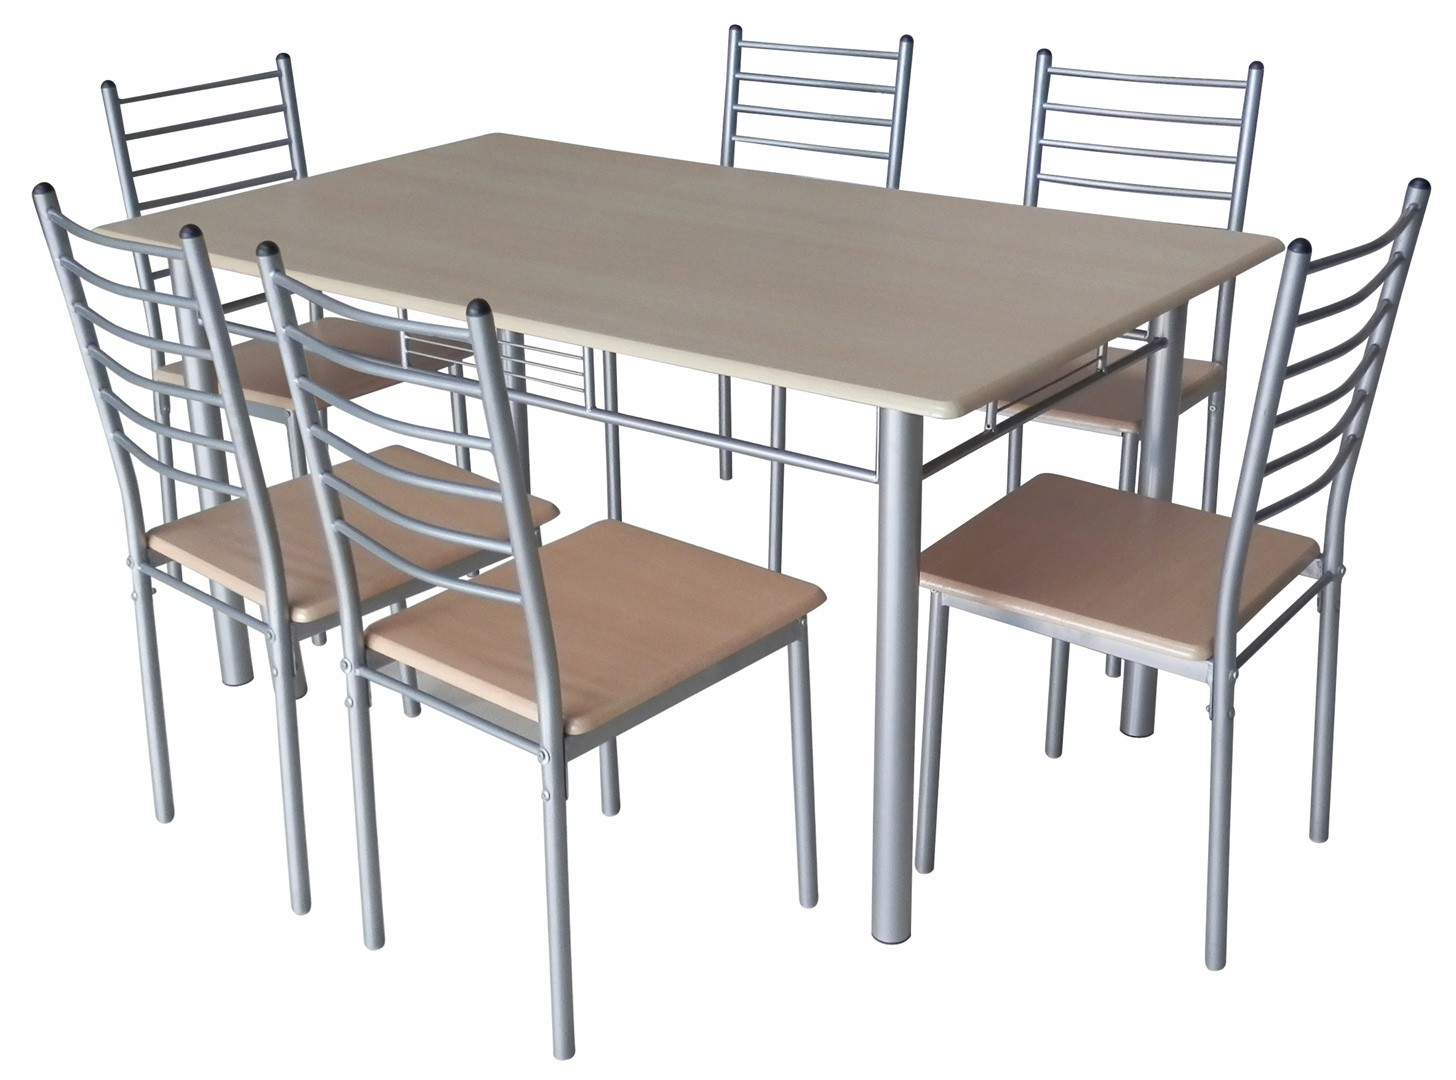 Table de cuisine avec chaises maison design for Ensemble table et chaise de cuisine design